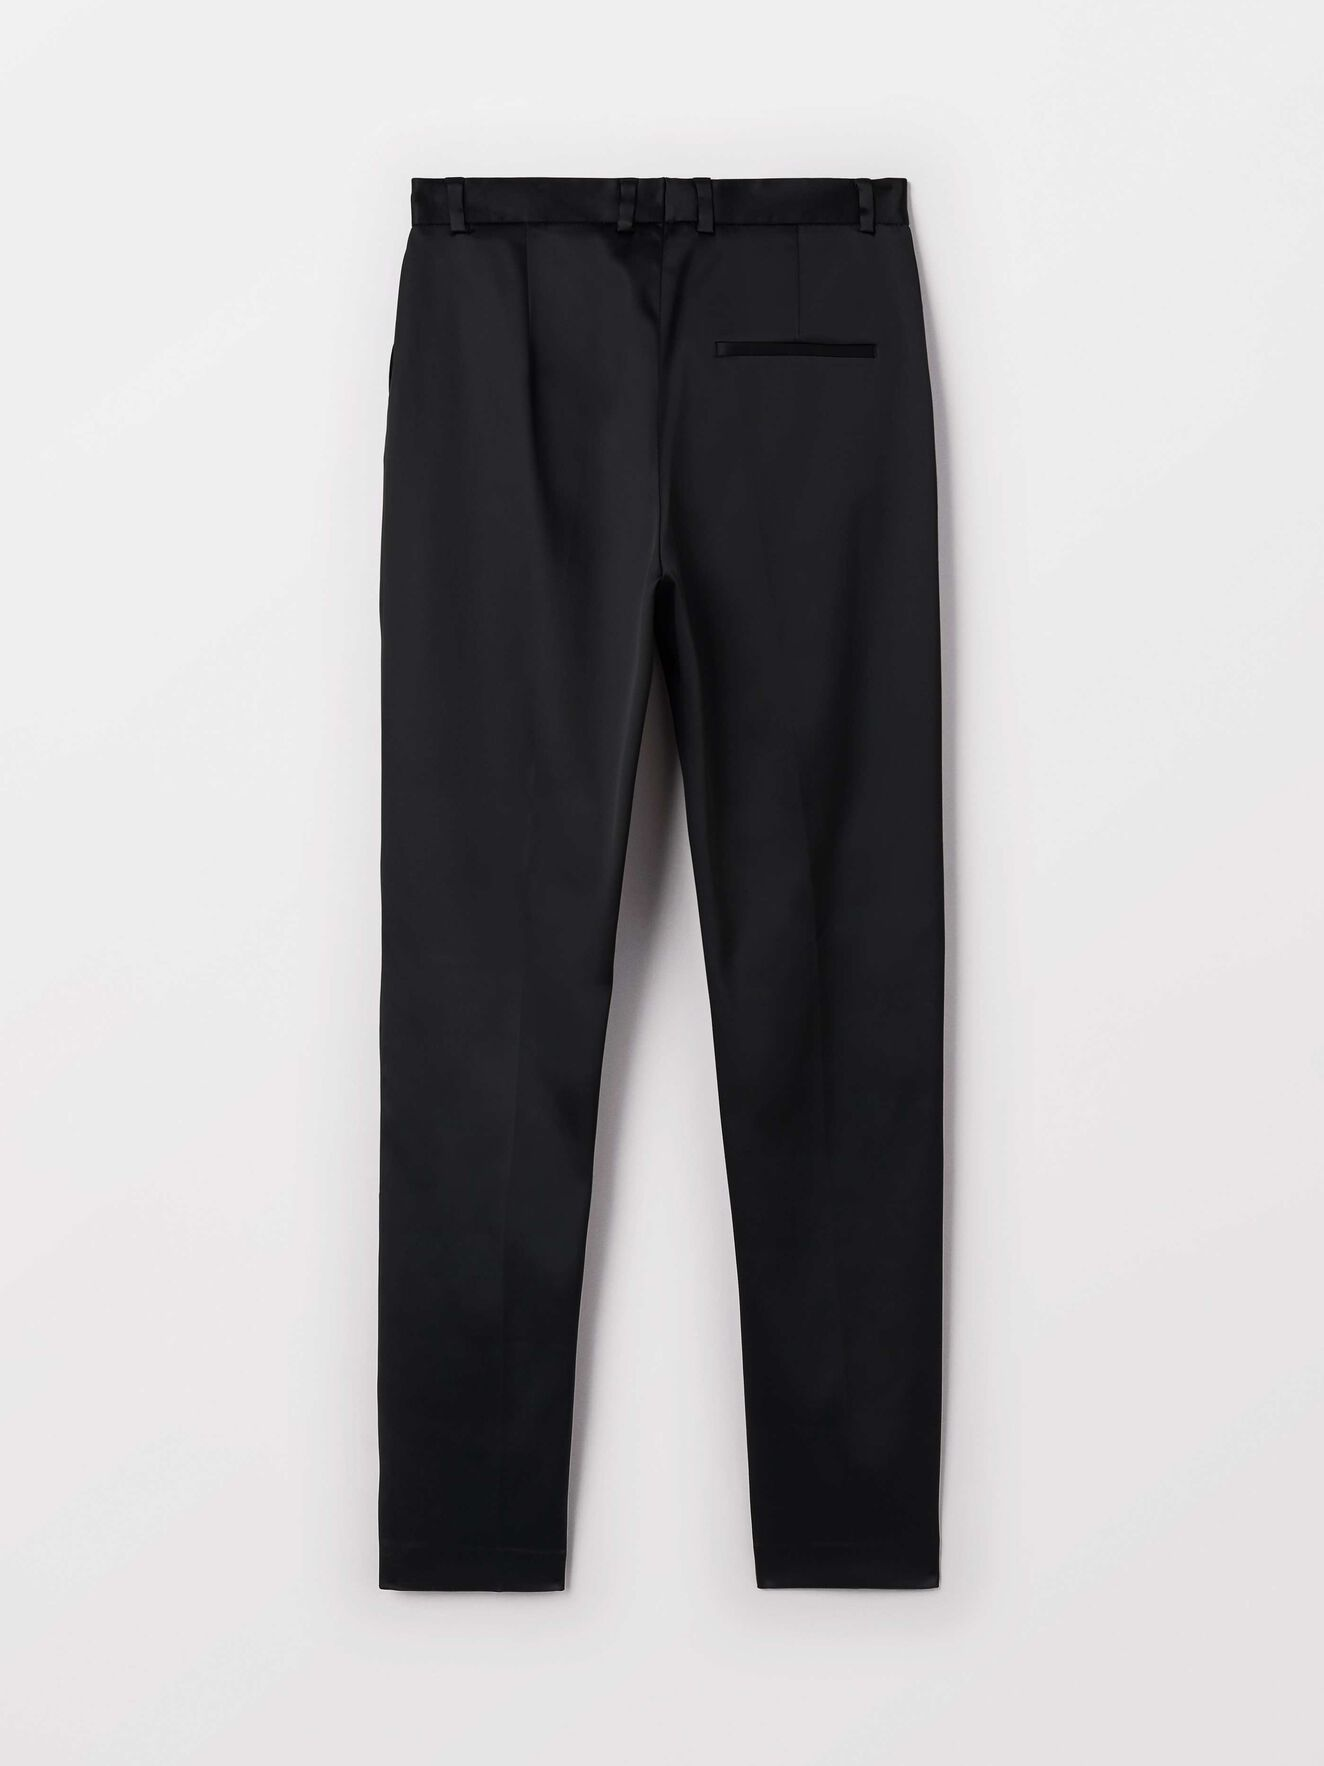 Loanella S Trousers in Midnight Black from Tiger of Sweden